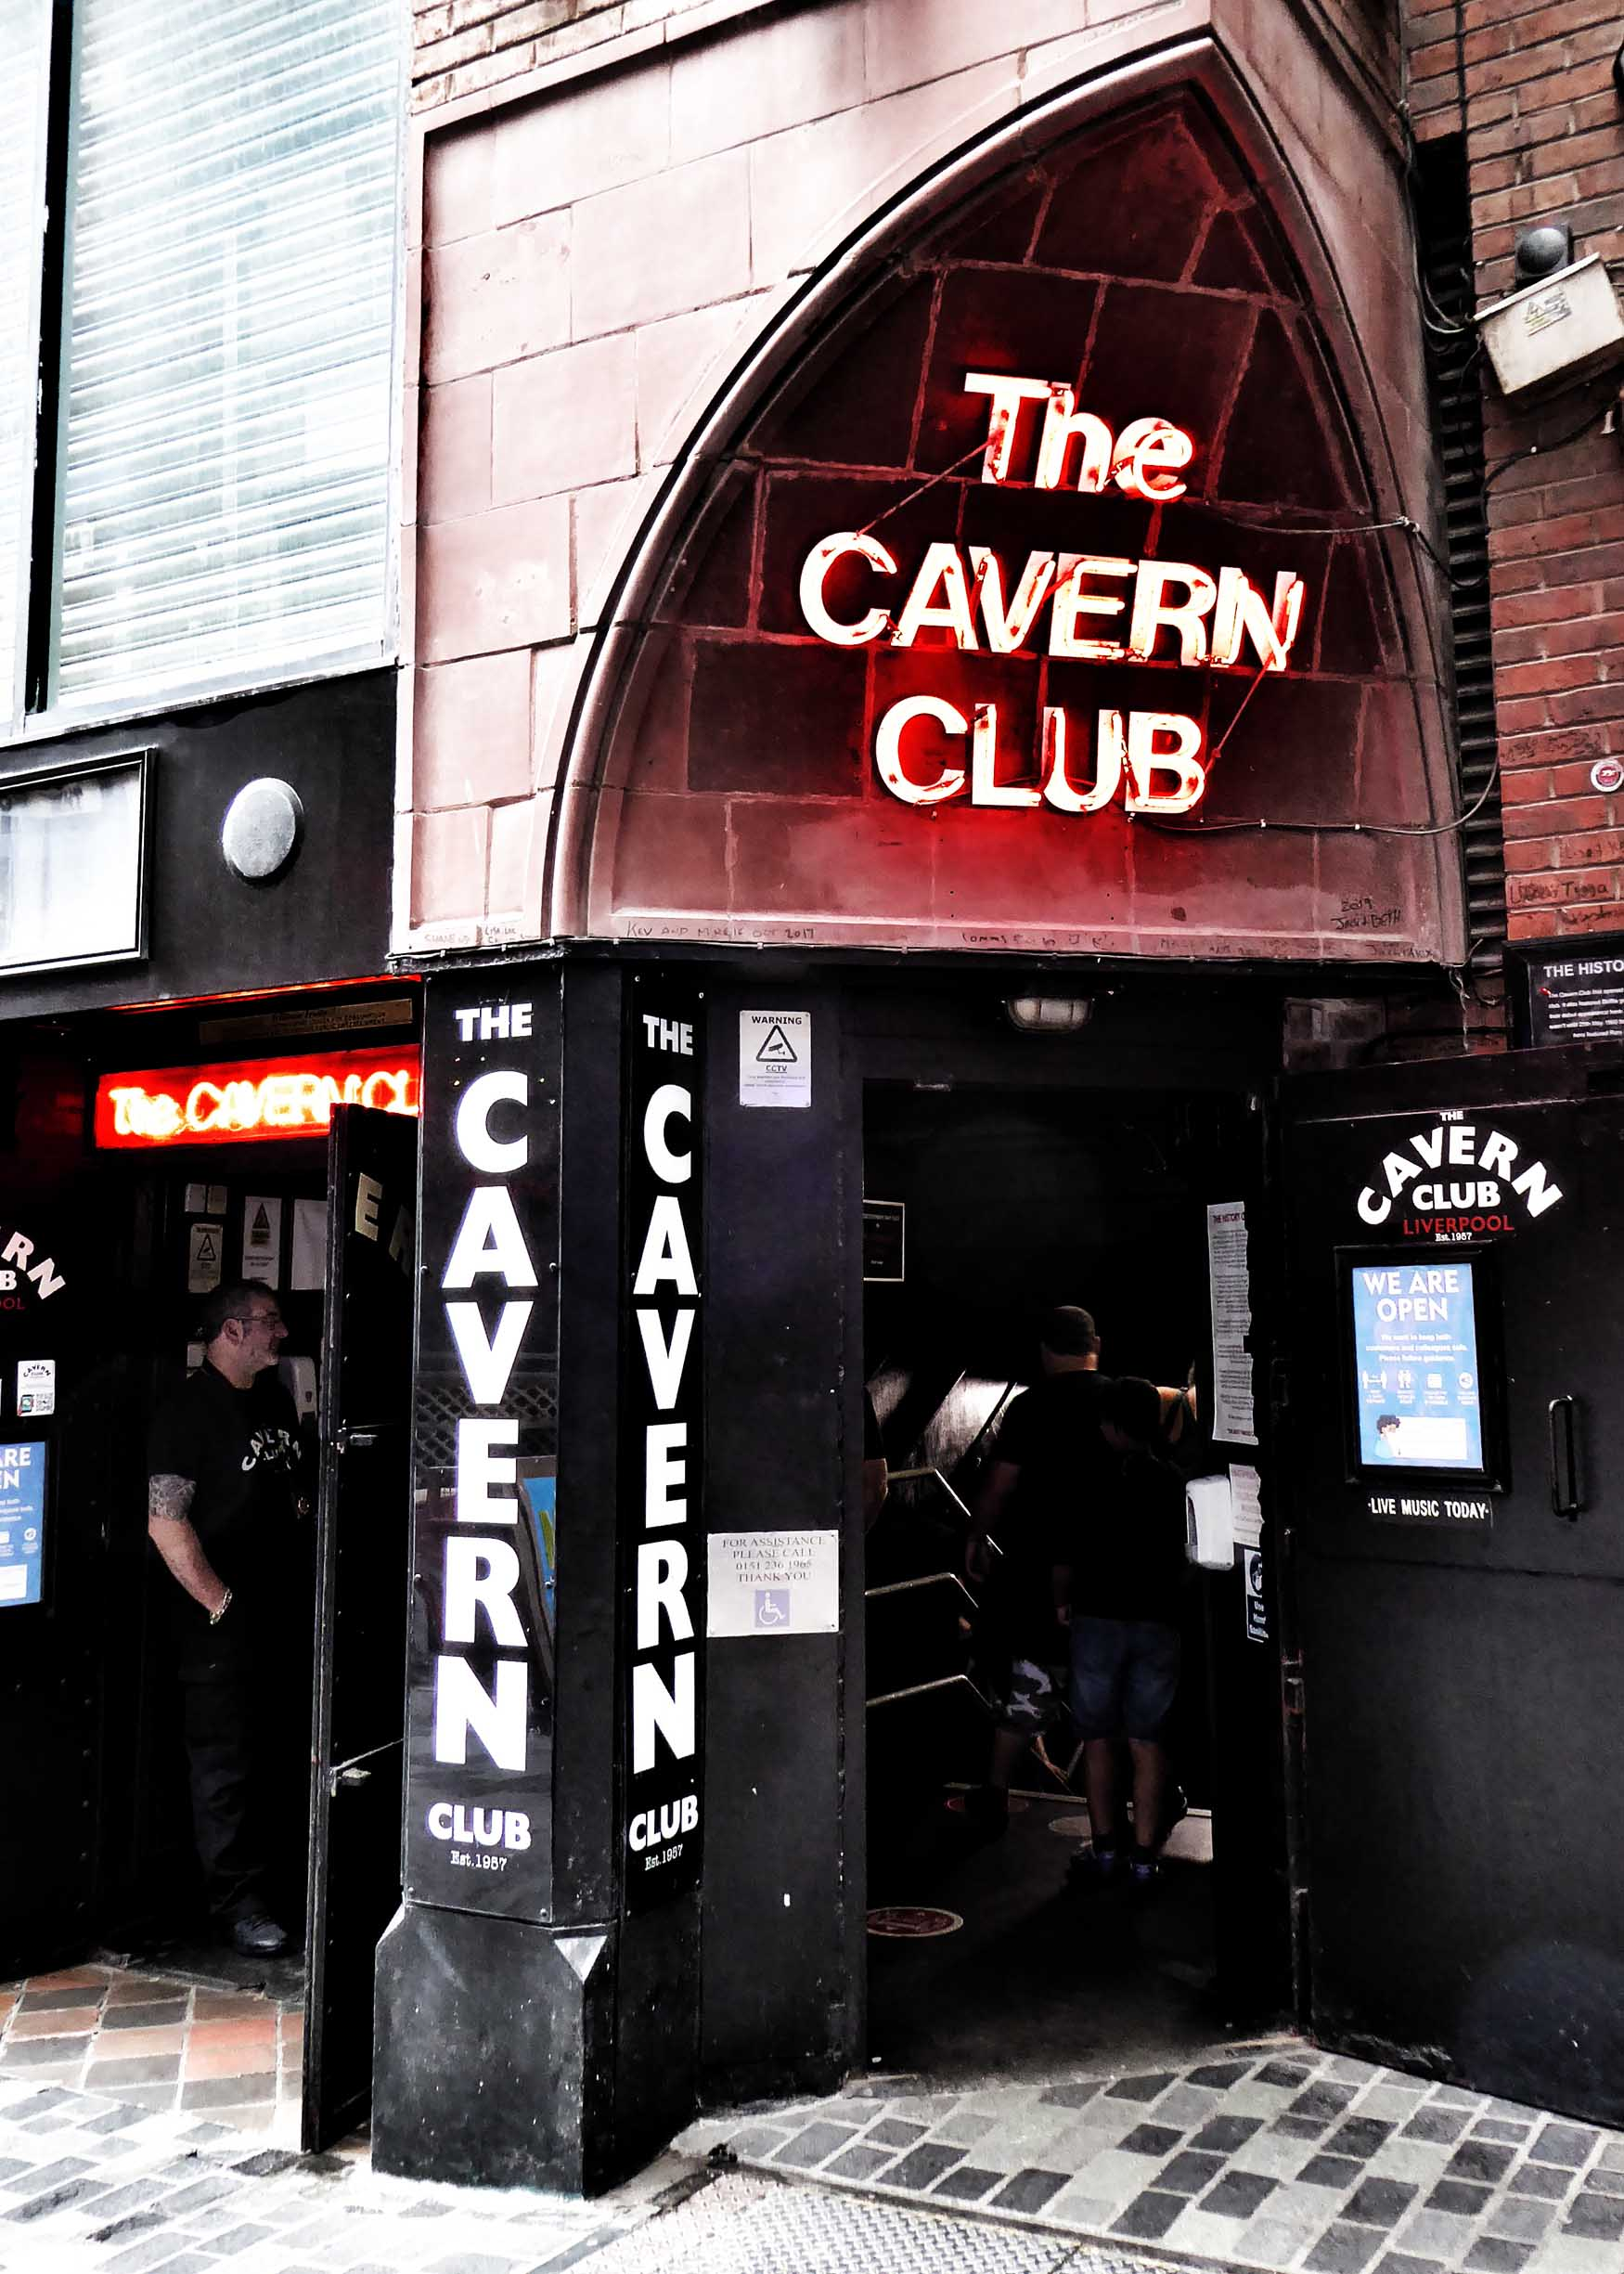 Doorway with Cavern Club sign above